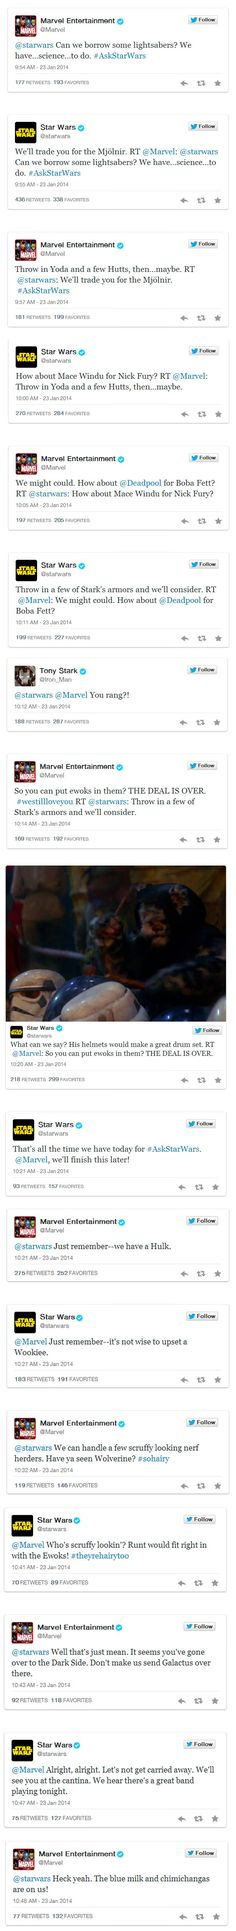 Star Wars and Marvel Just Had the Geekiest Twitter Conversation So Far This Year - I see this as a response to what Joss started with wanting to trade the Ewok song for Thor. THIS IS PERFECT!!